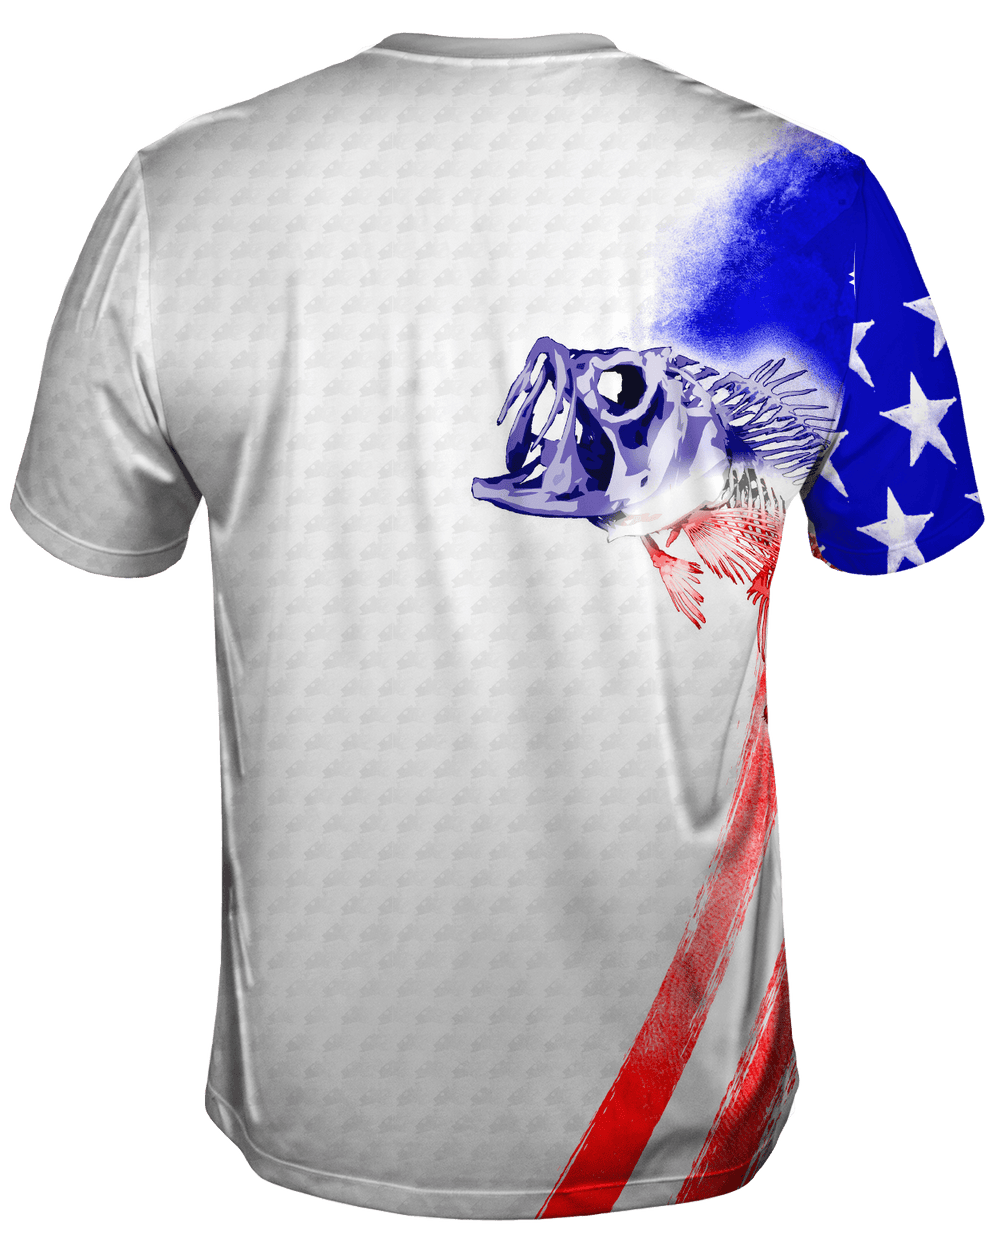 Bass Stars & Stripes Short Sleeve - Bones Outfitters